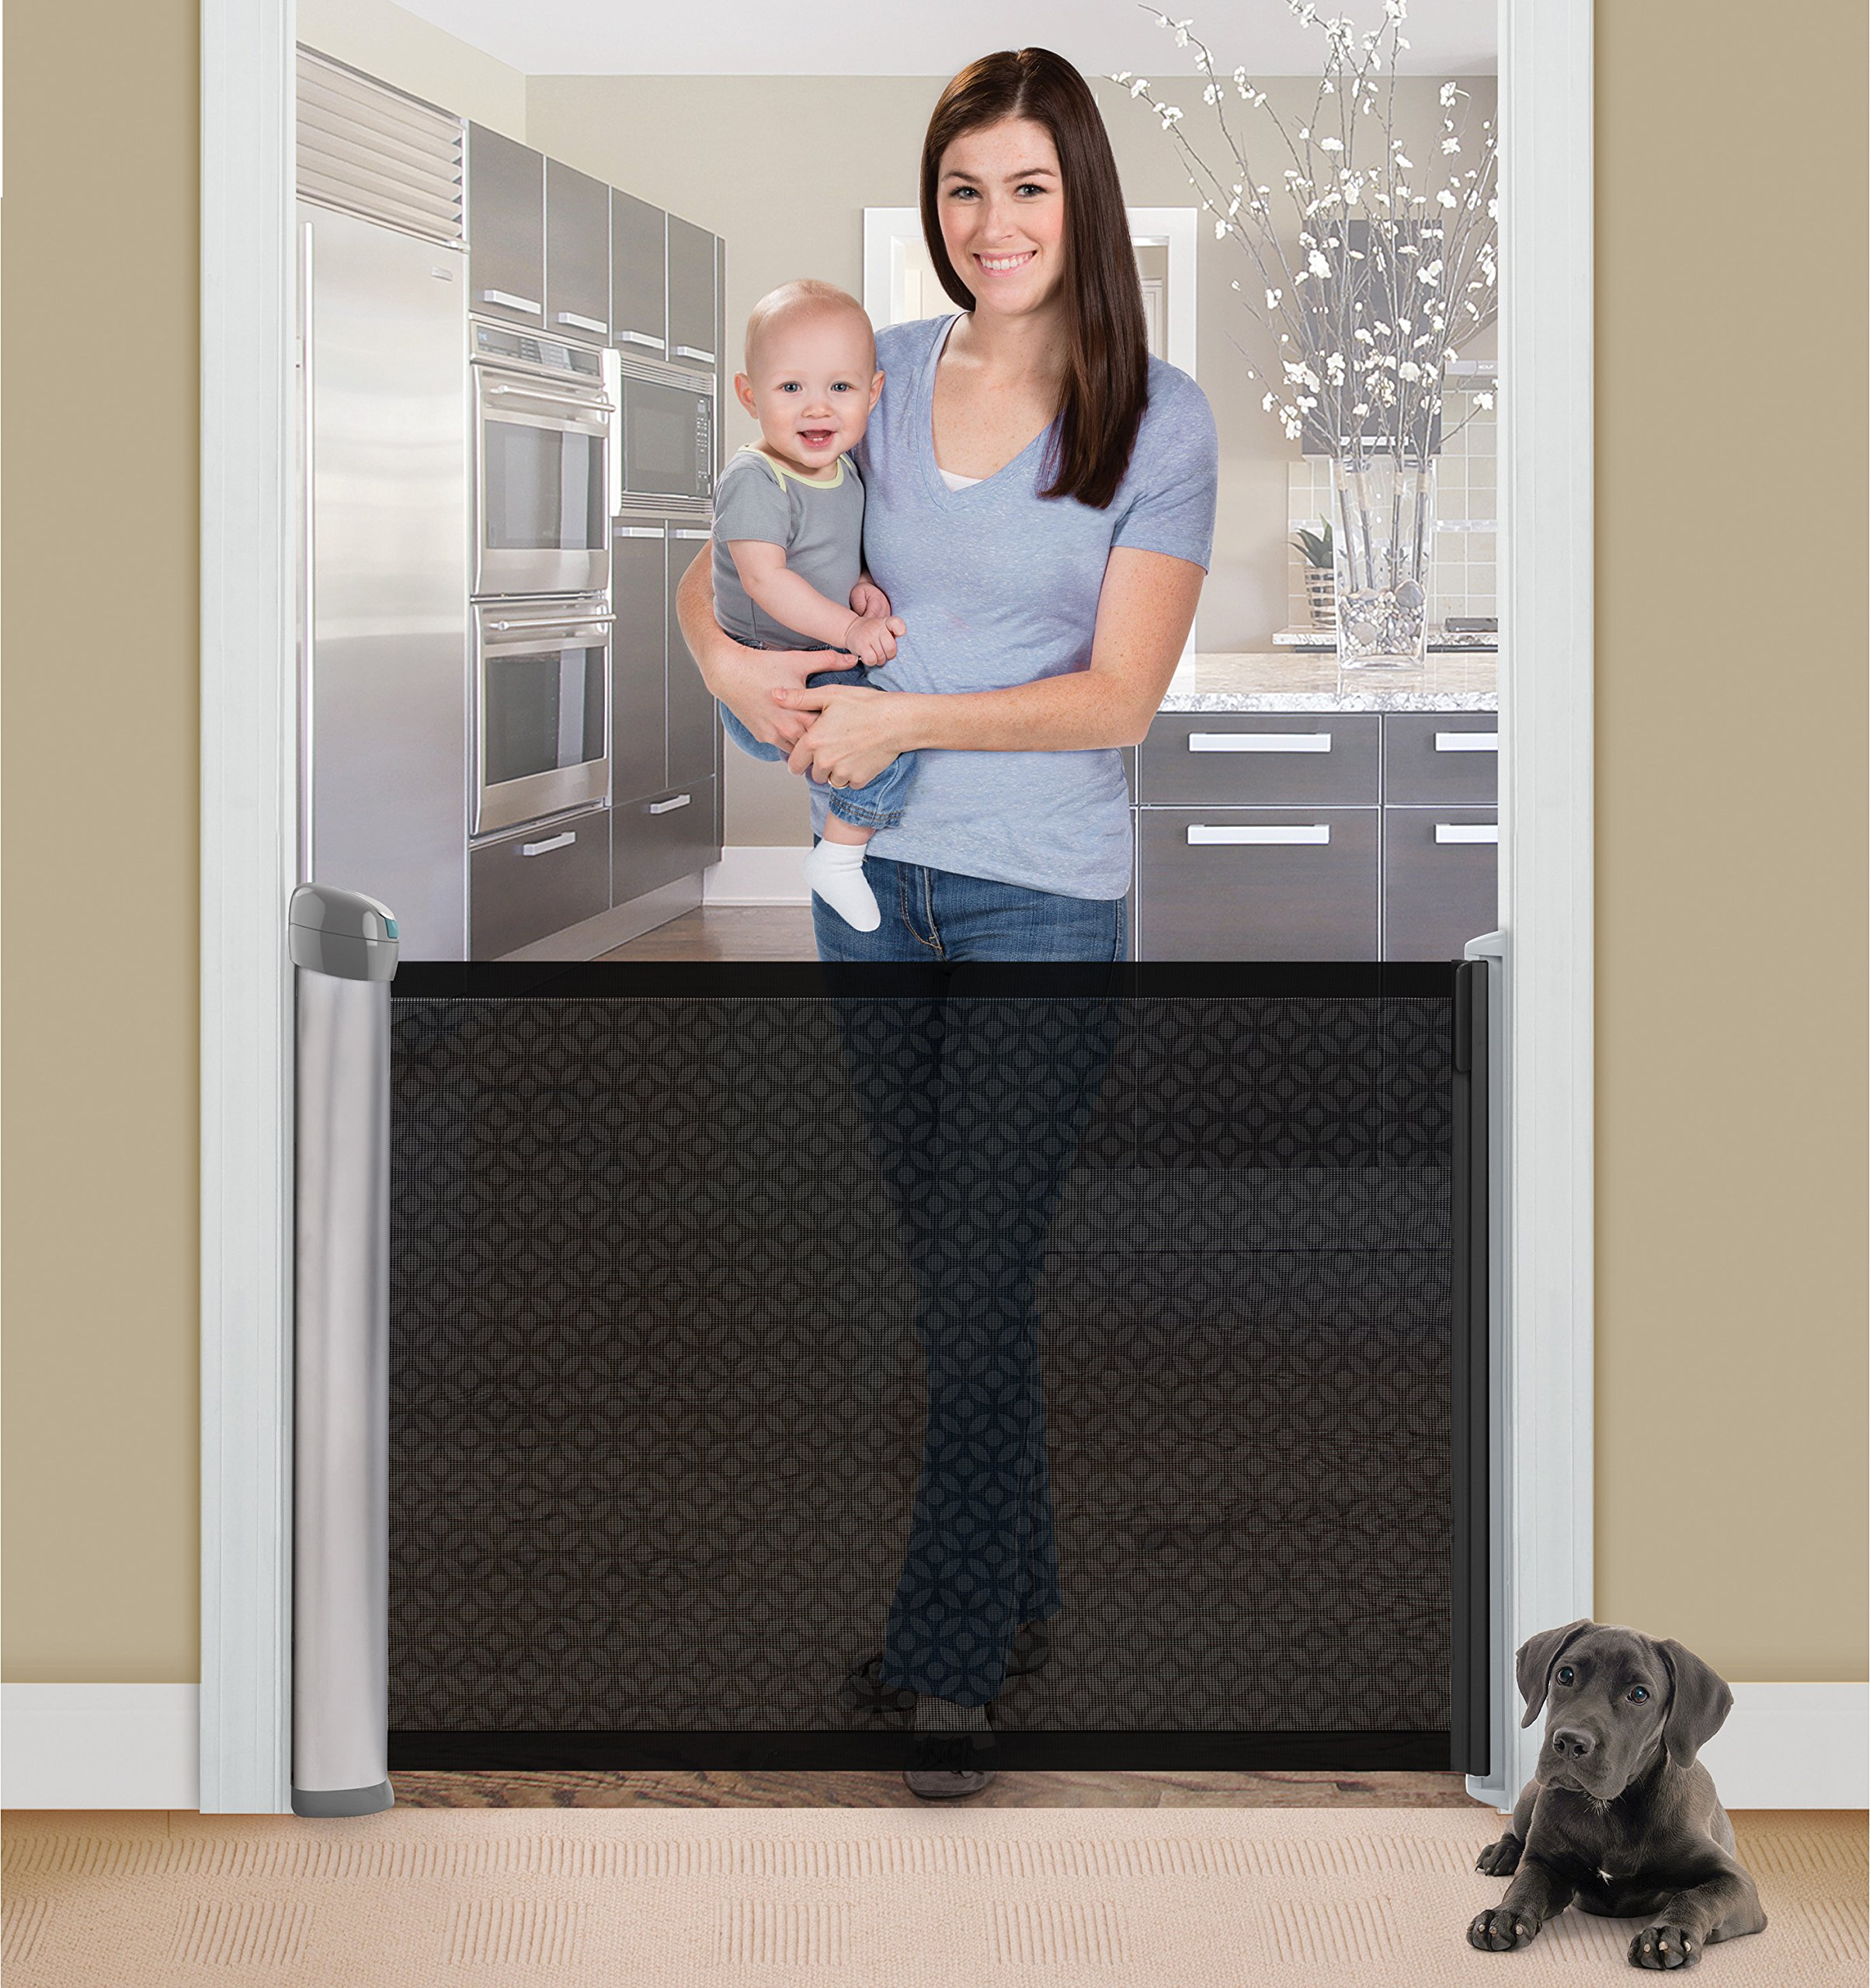 Summer Infant Retractable Gate  Hardware mounted for added security and use at top of stairs or between rooms (hardware included) 76 cm tall and fits openings up to 127 cm Simple locking mechanism, push down to lock and pull up to unlock 2